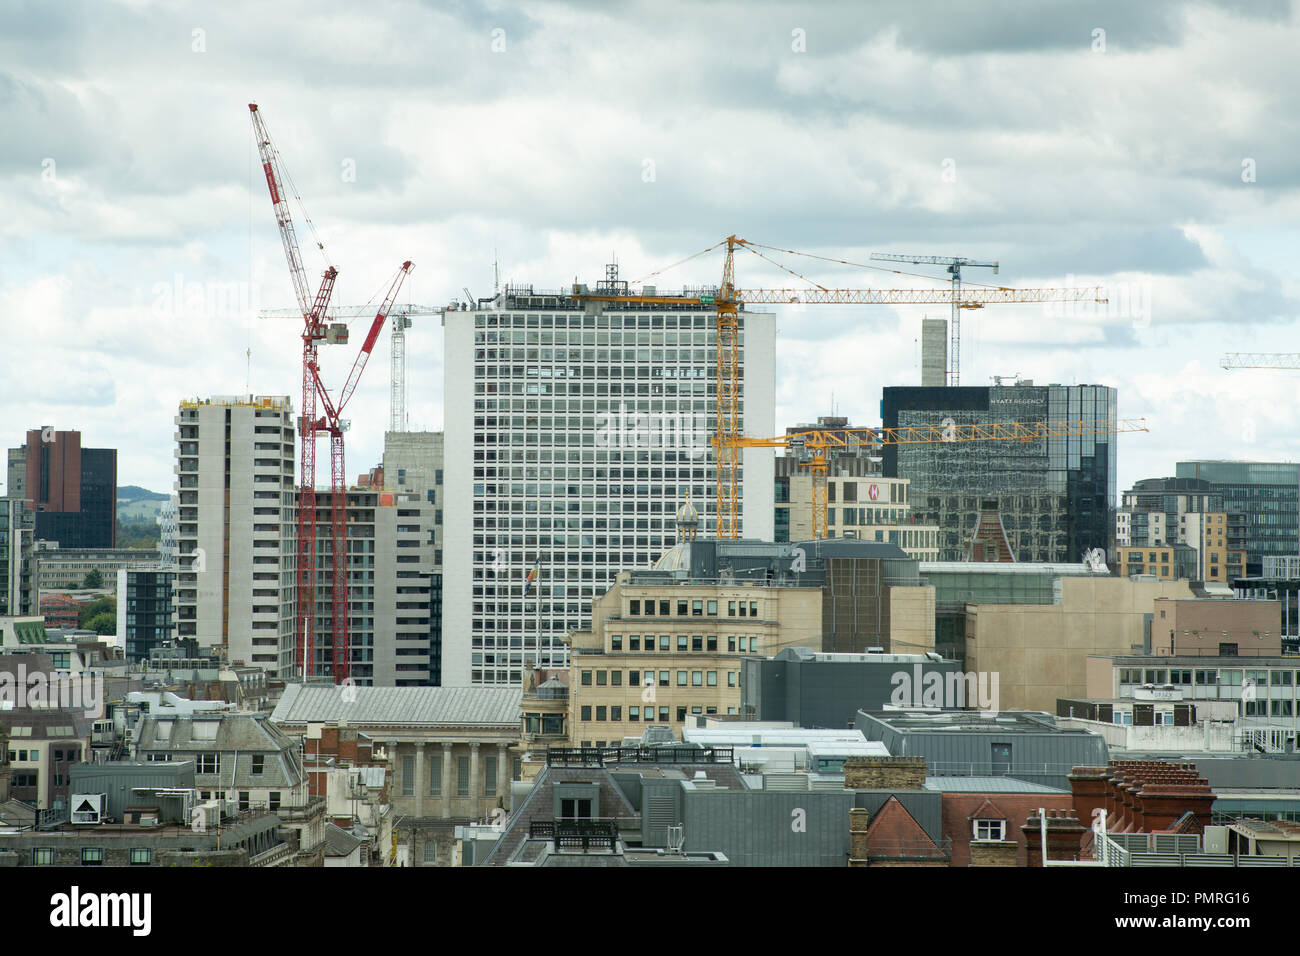 Birmingham Skyline, pictured from Colmore Row looking towards Paradise Circus - Stock Image